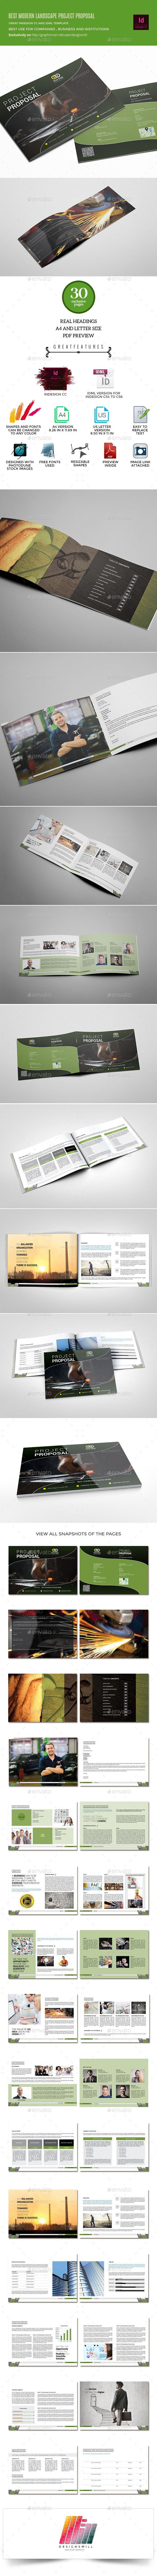 Three Rings Project Proposal Template  Proposal Templates